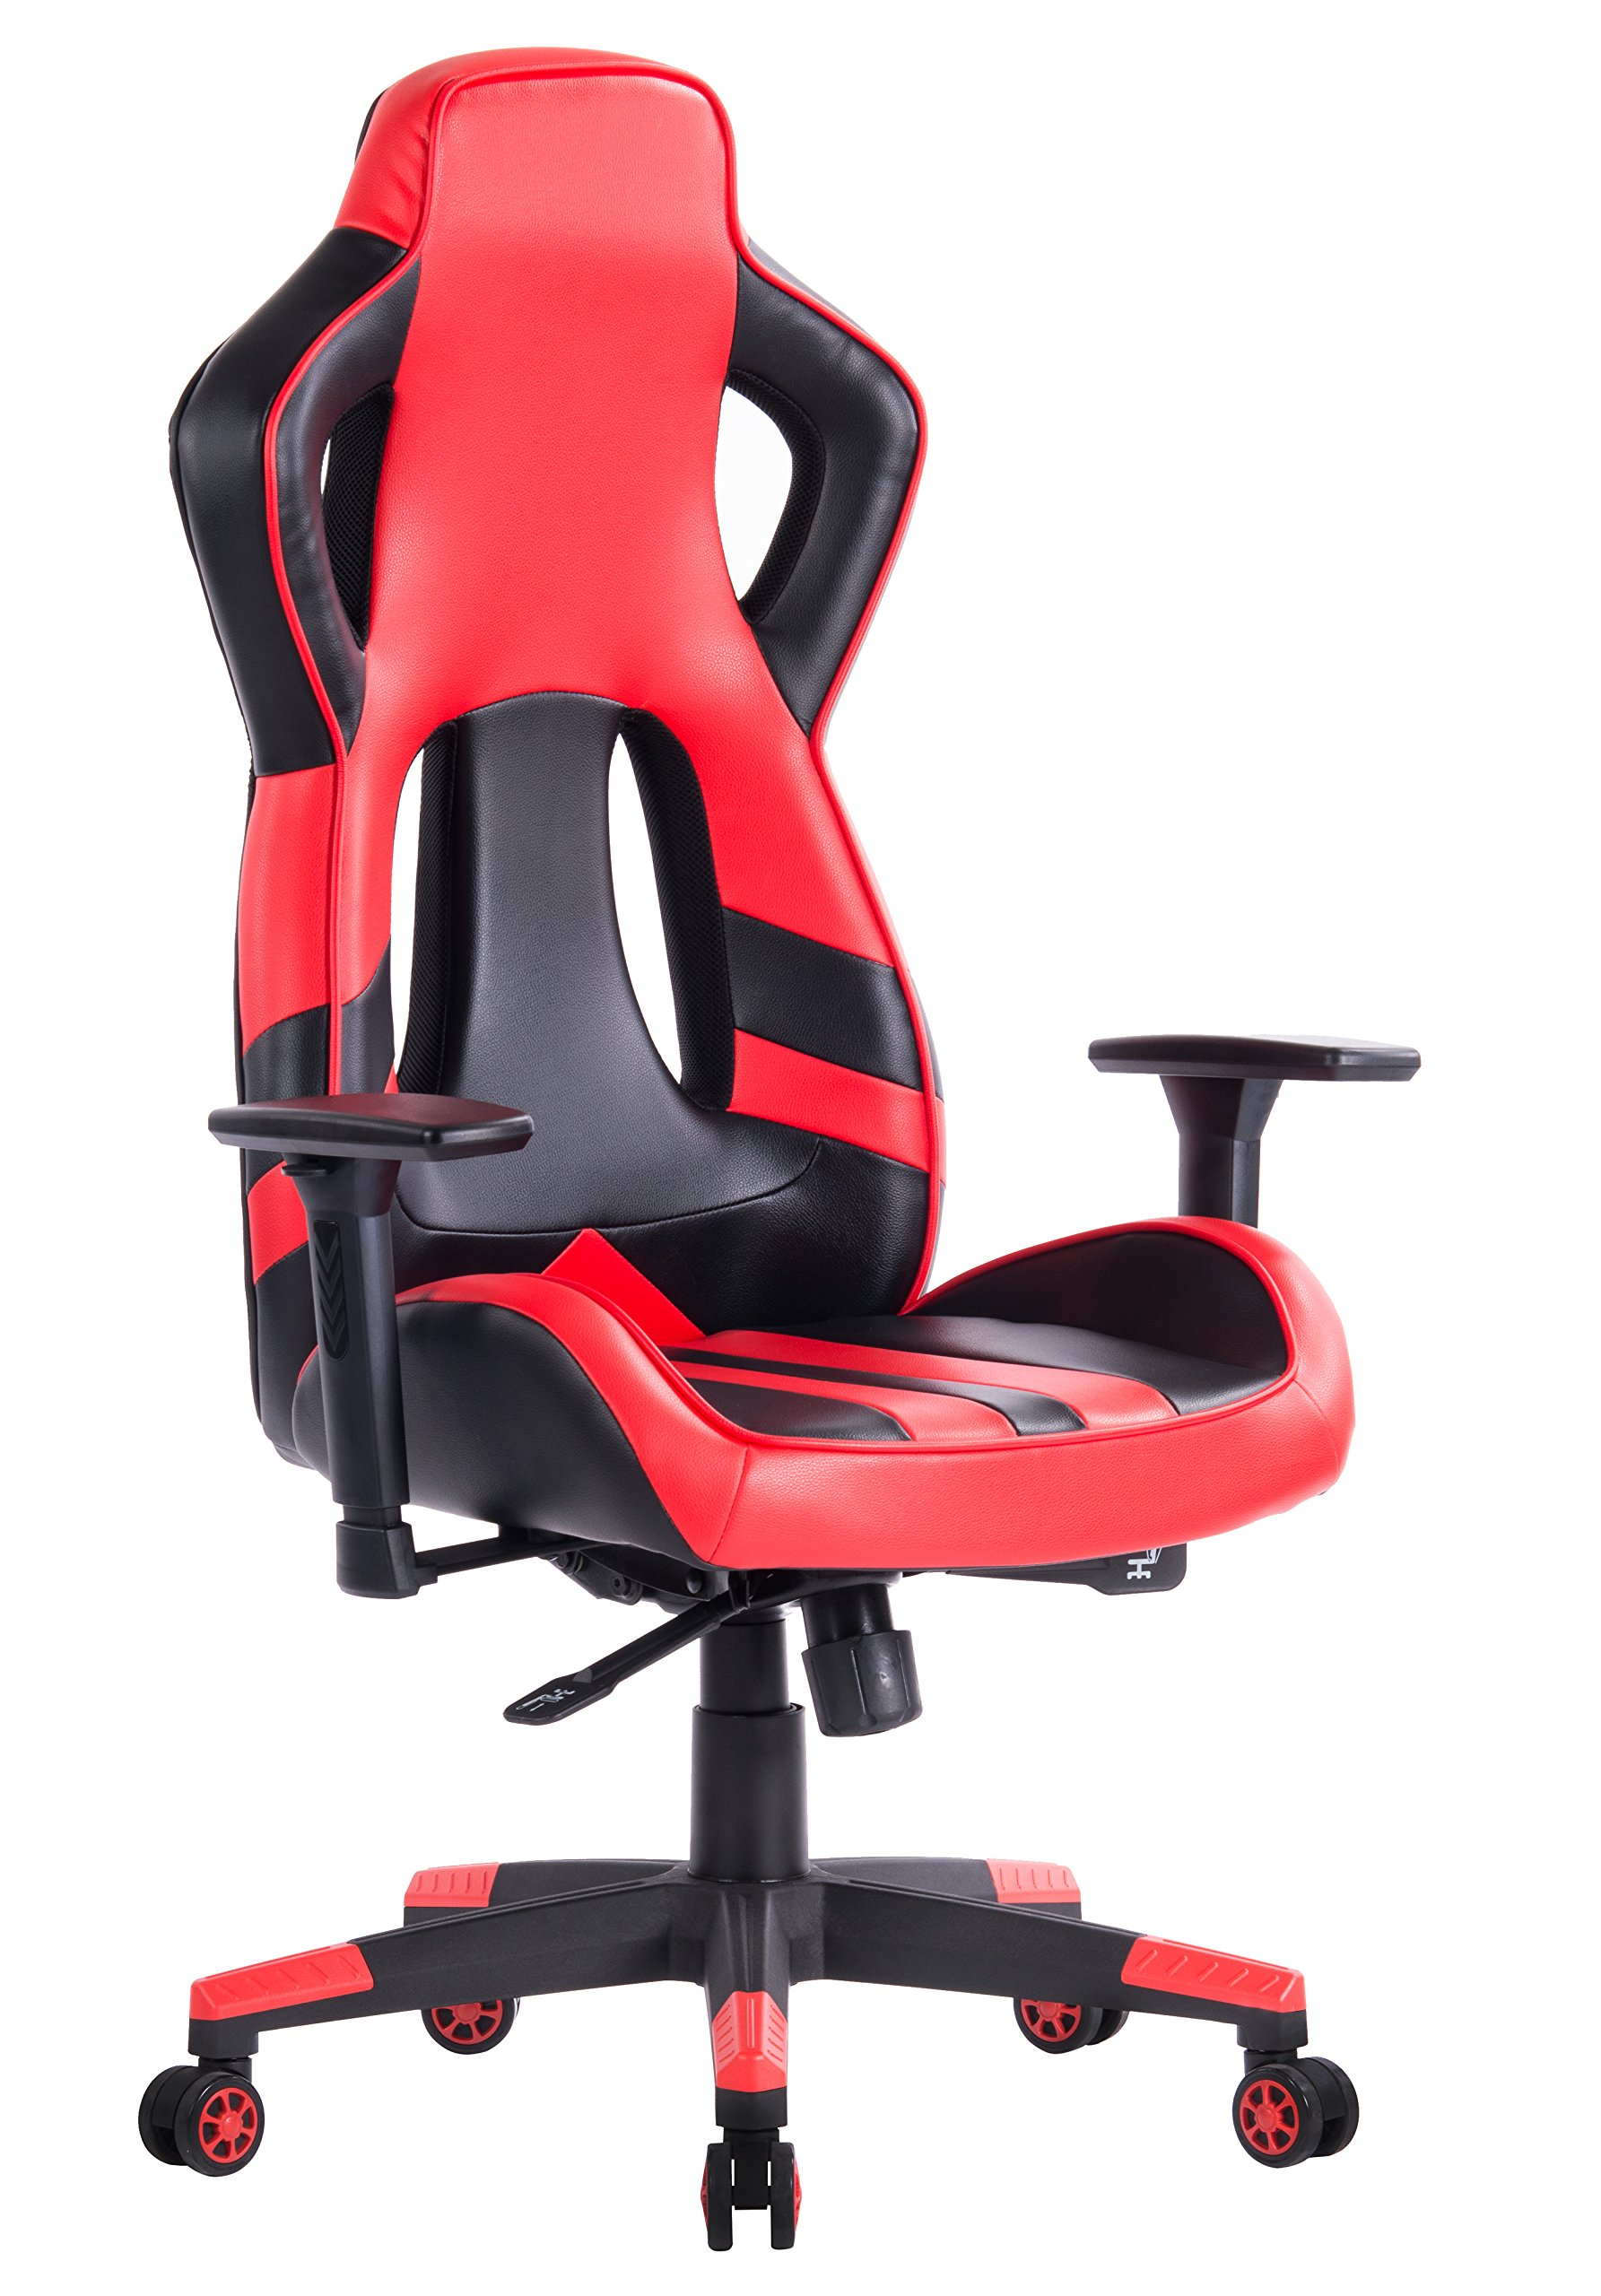 KILLABEE Ergonomic Racing Style Gaming Chair - Adjustable 3-D Arms Multifunctional High-Back Leather E-sports Computer Chair, Comfortable Executive Office Chair